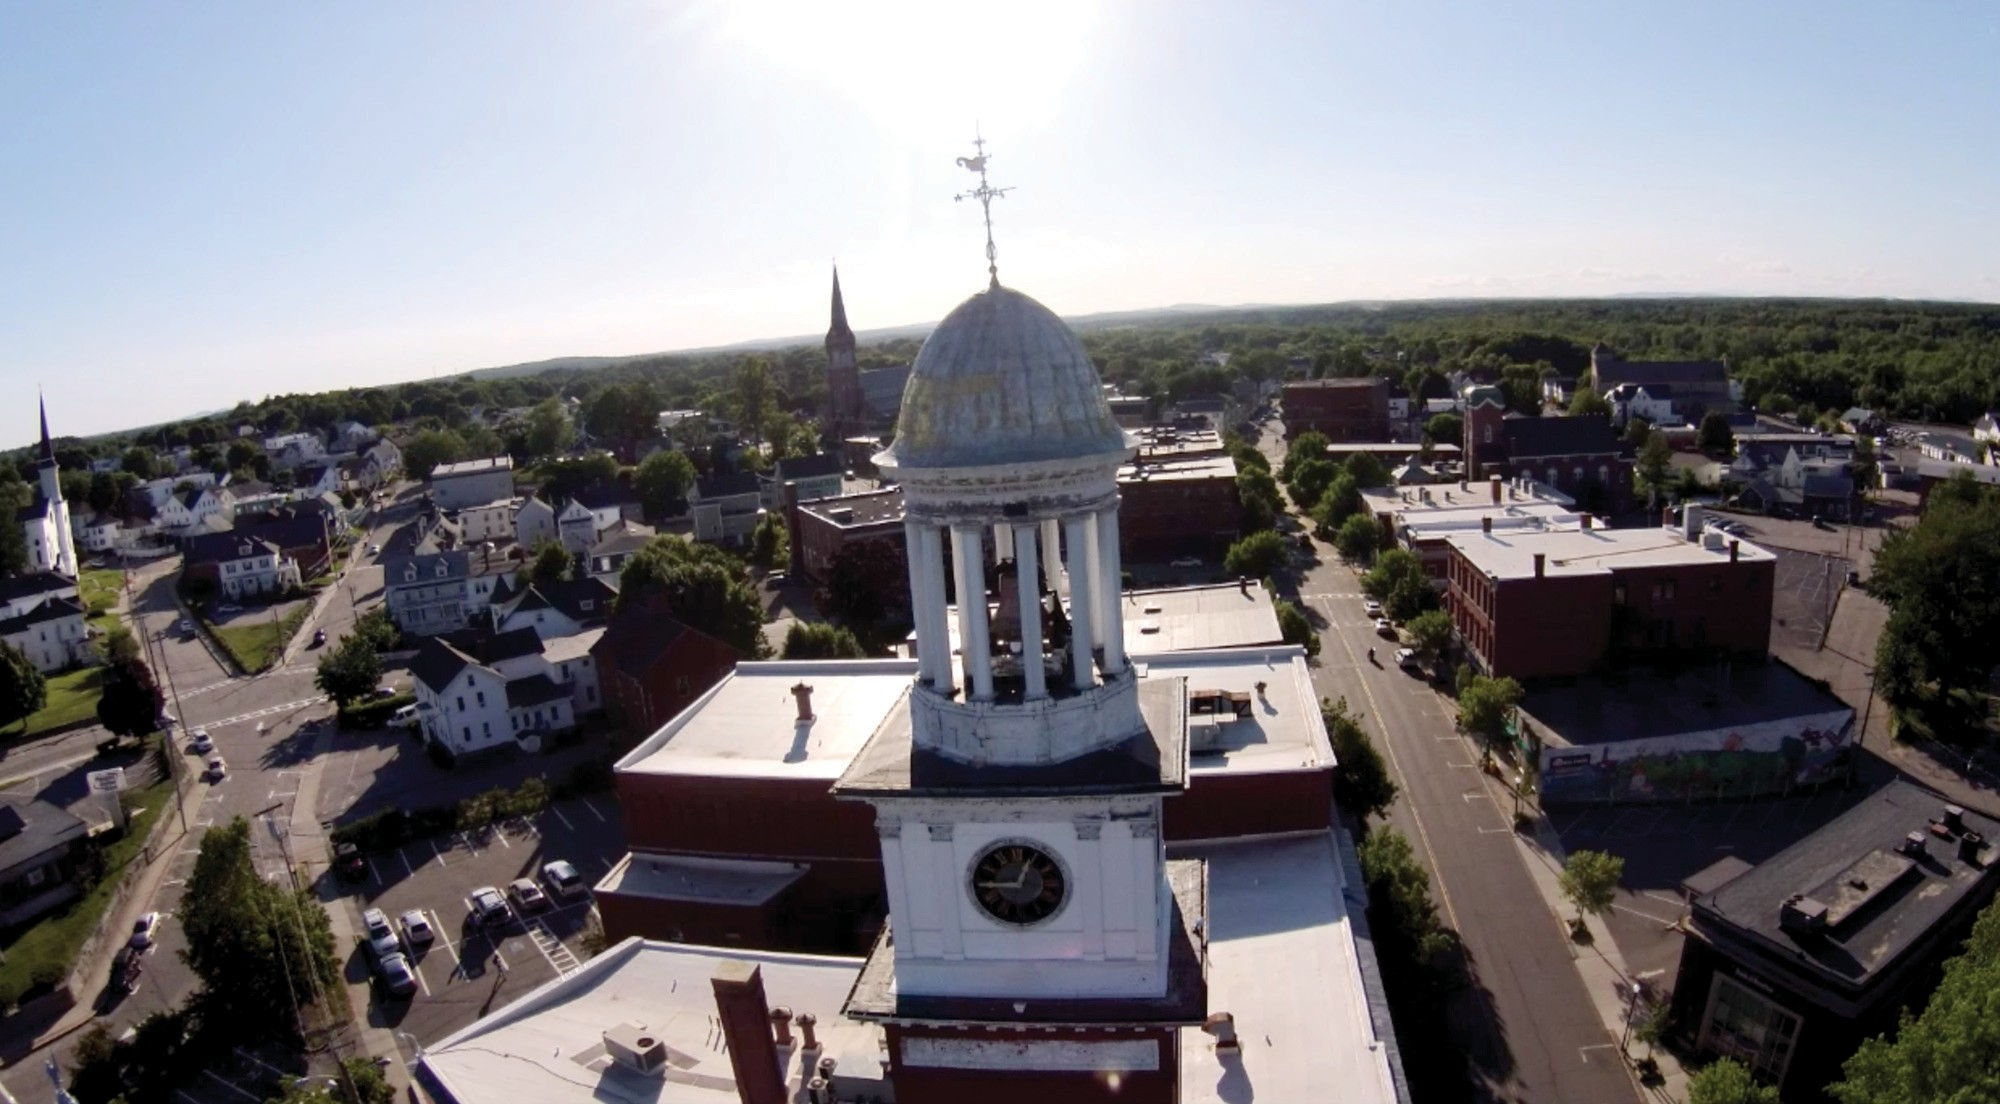 The Biddeford City Hall clock tower is pictured in a video taken about a year ago using Deputy Fire Chief Paul LaBrecque's drone. City officials hope the video will help convince voters to approve a bond in November that would pay for the restoration of the 120-year-old clock tower.